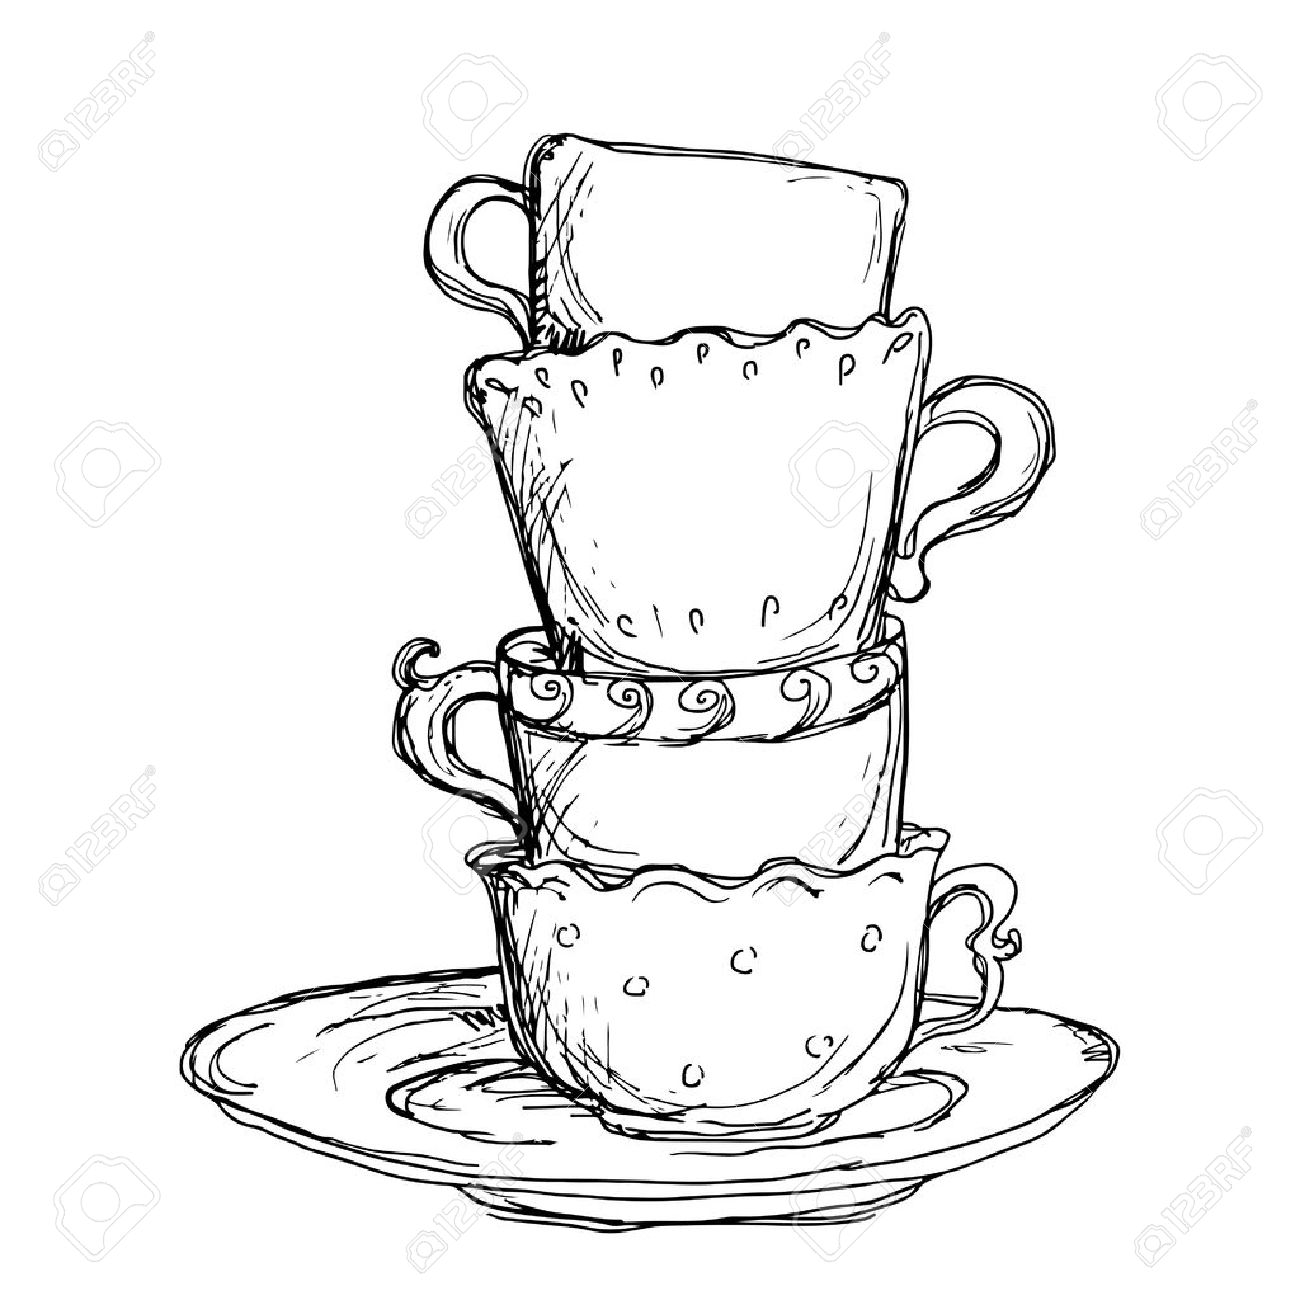 Set Sketch Cups And Saucer Isolated Vector Royalty Free Cliparts Vectors And Stock Illustration Image 23679248